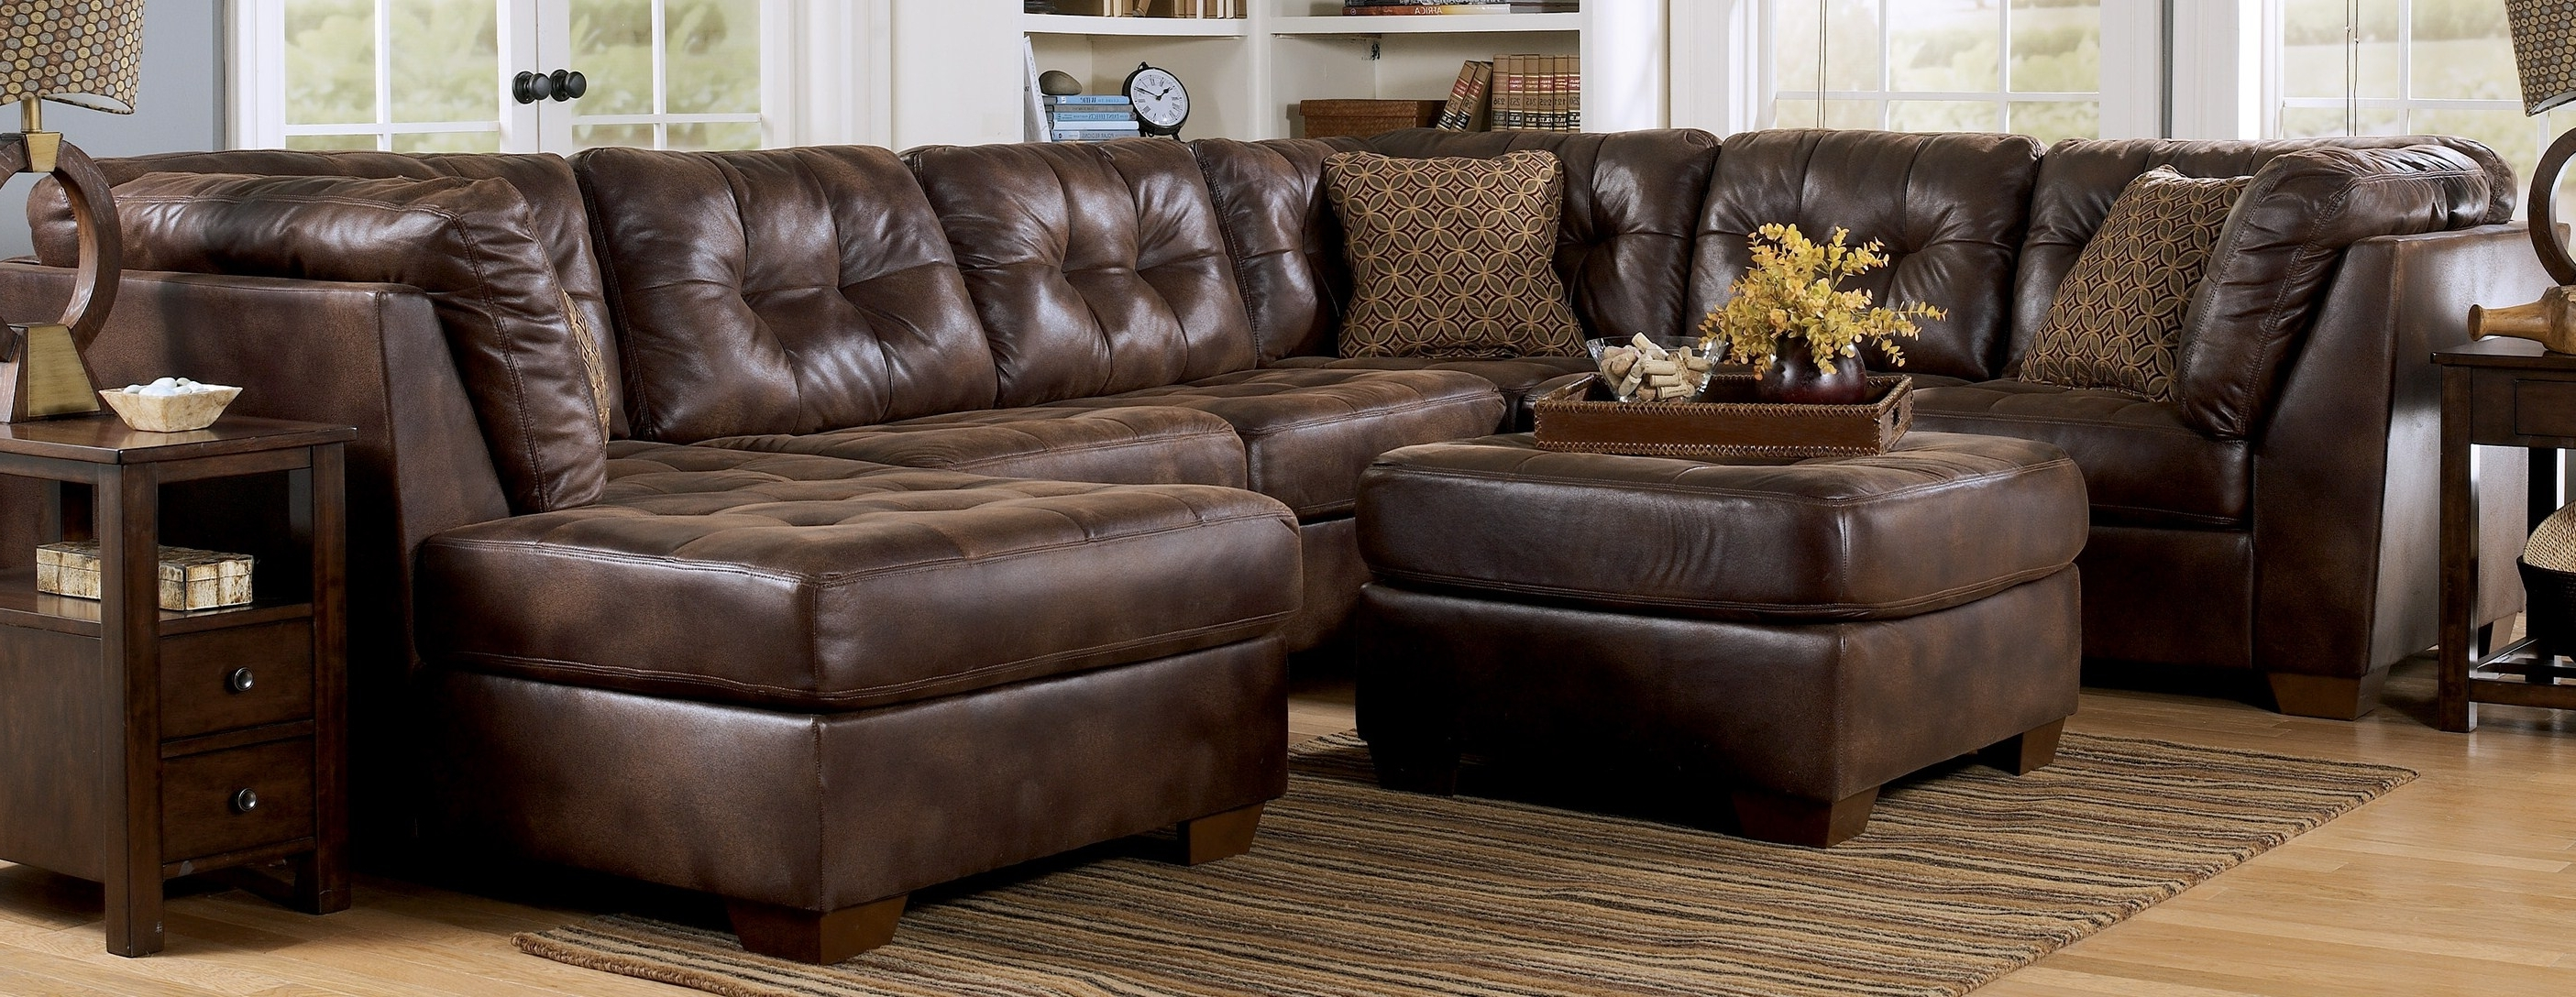 Big Lots Recliners Ashley Furniture Sectional Sofas Cheap In Favorite Big Lots Chaises (View 7 of 15)